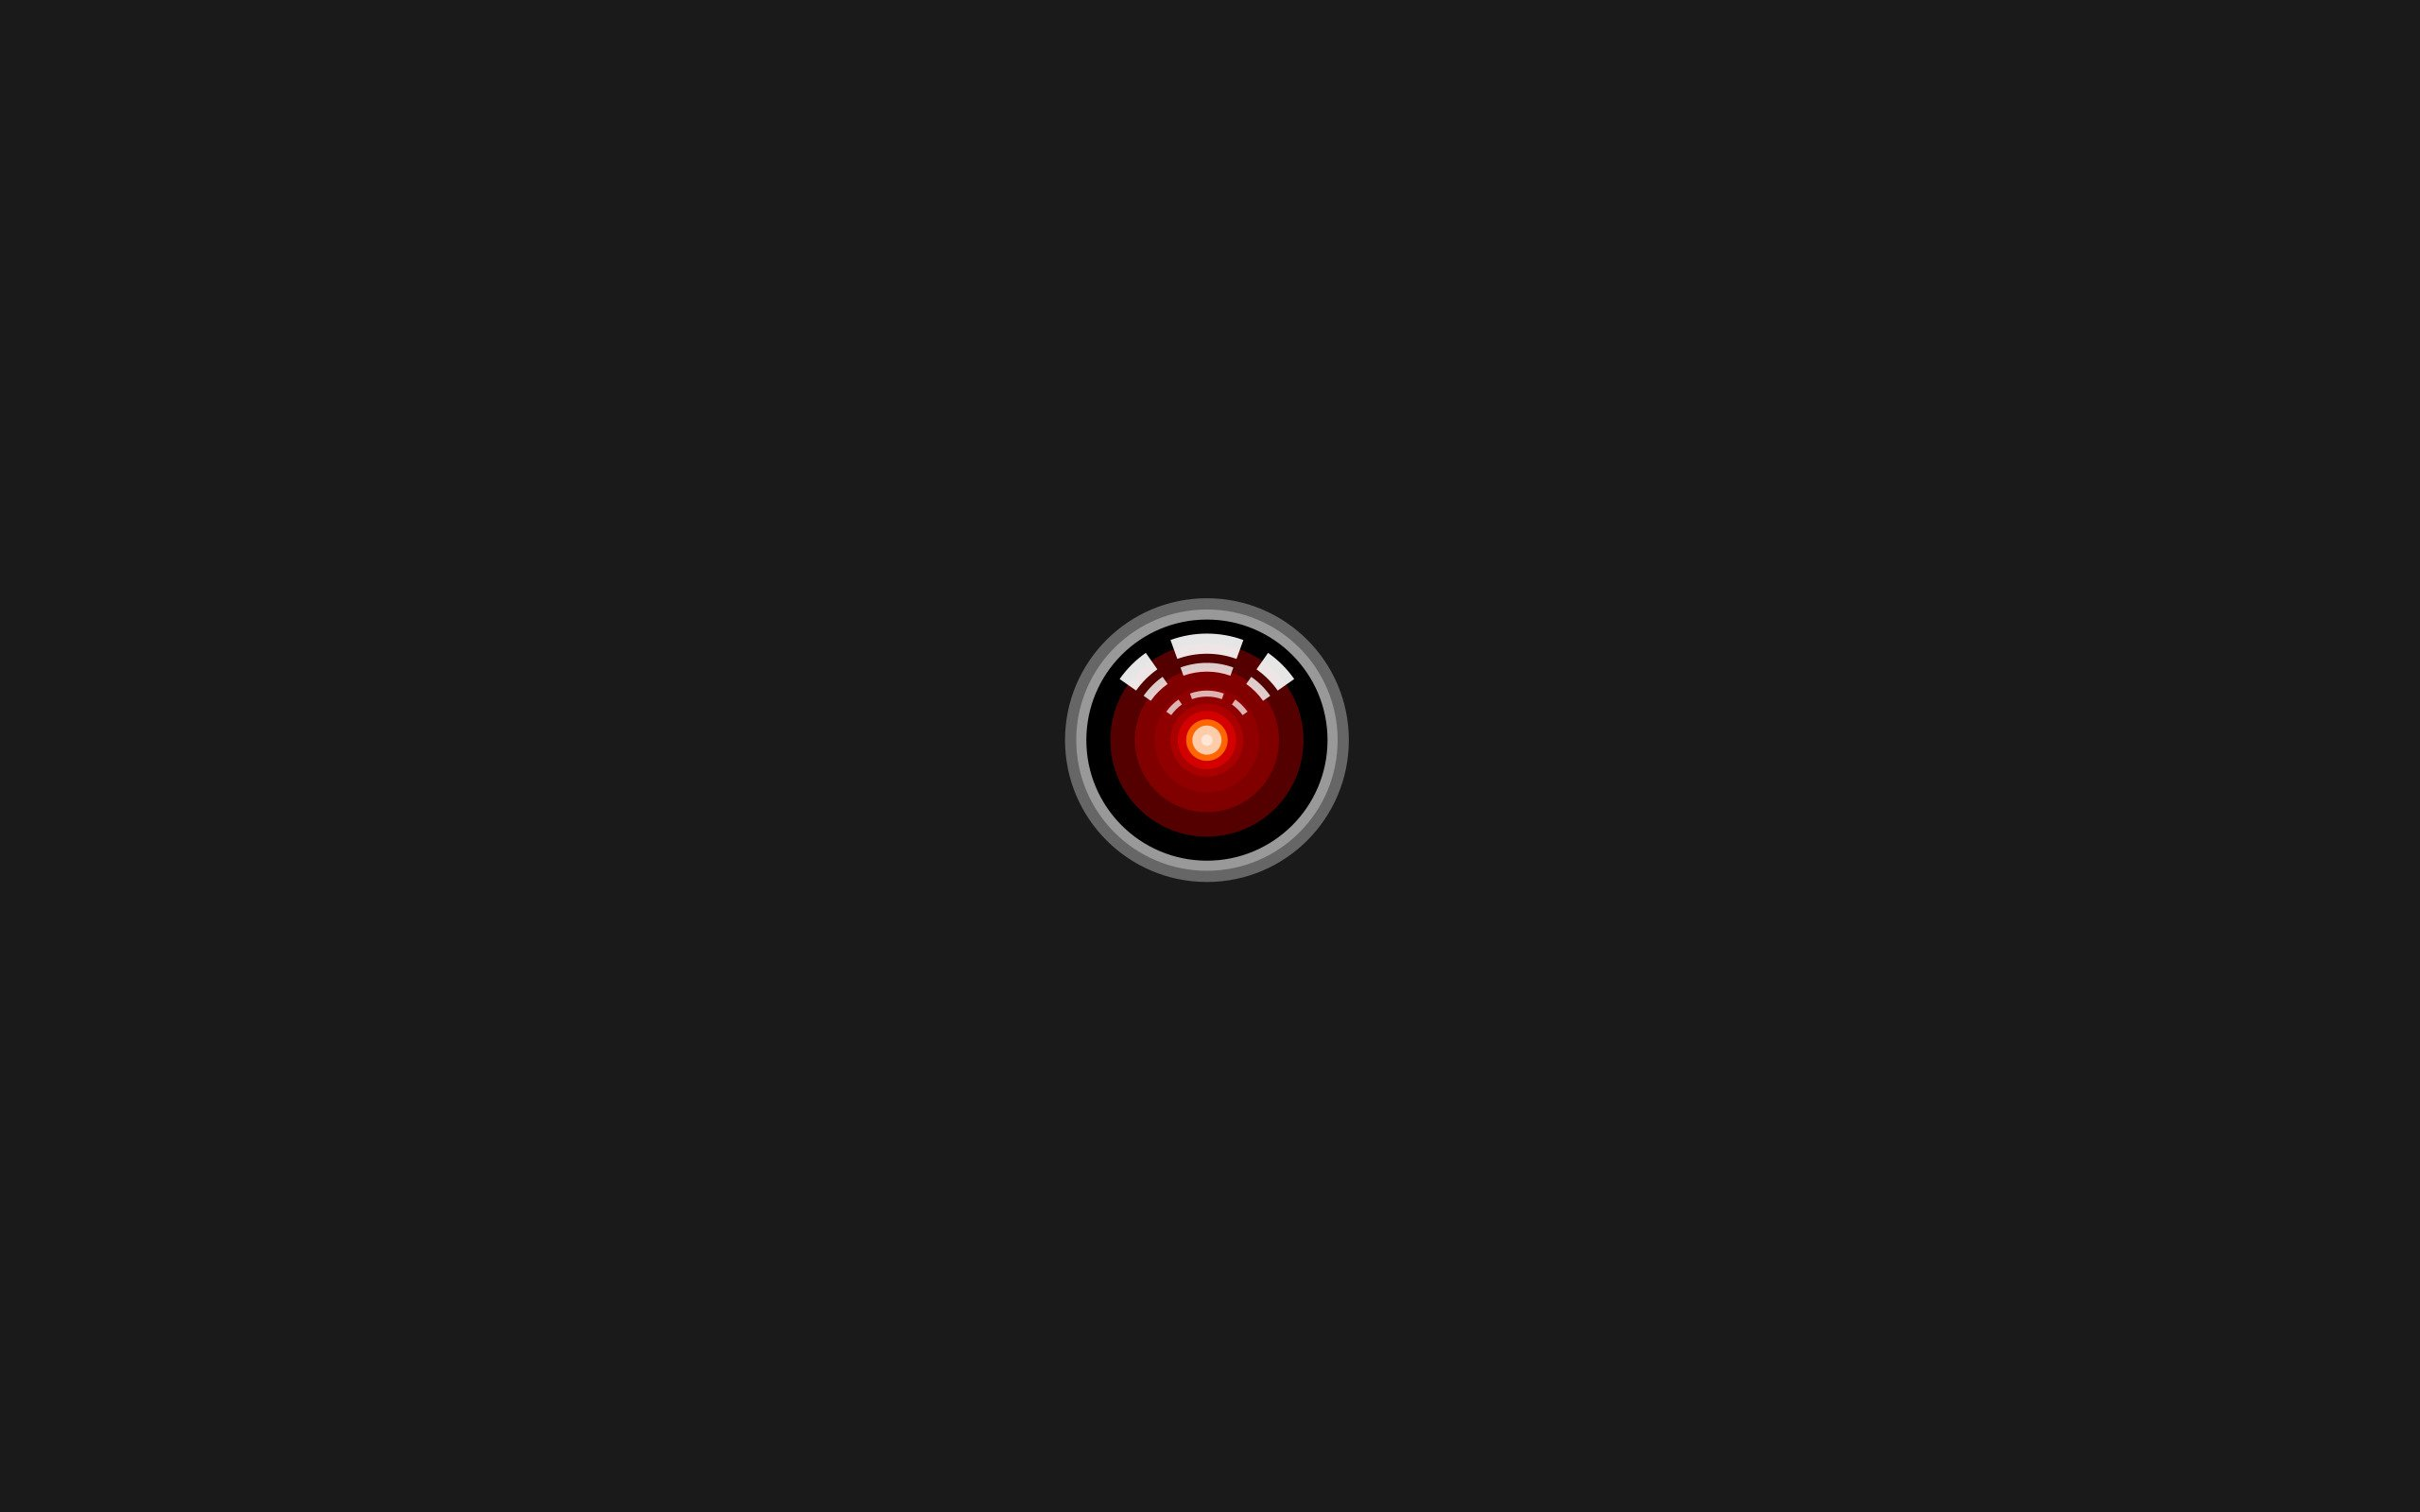 Hal 9000 Minimalism 2001 A Space Odyssey Hd Wallpapers